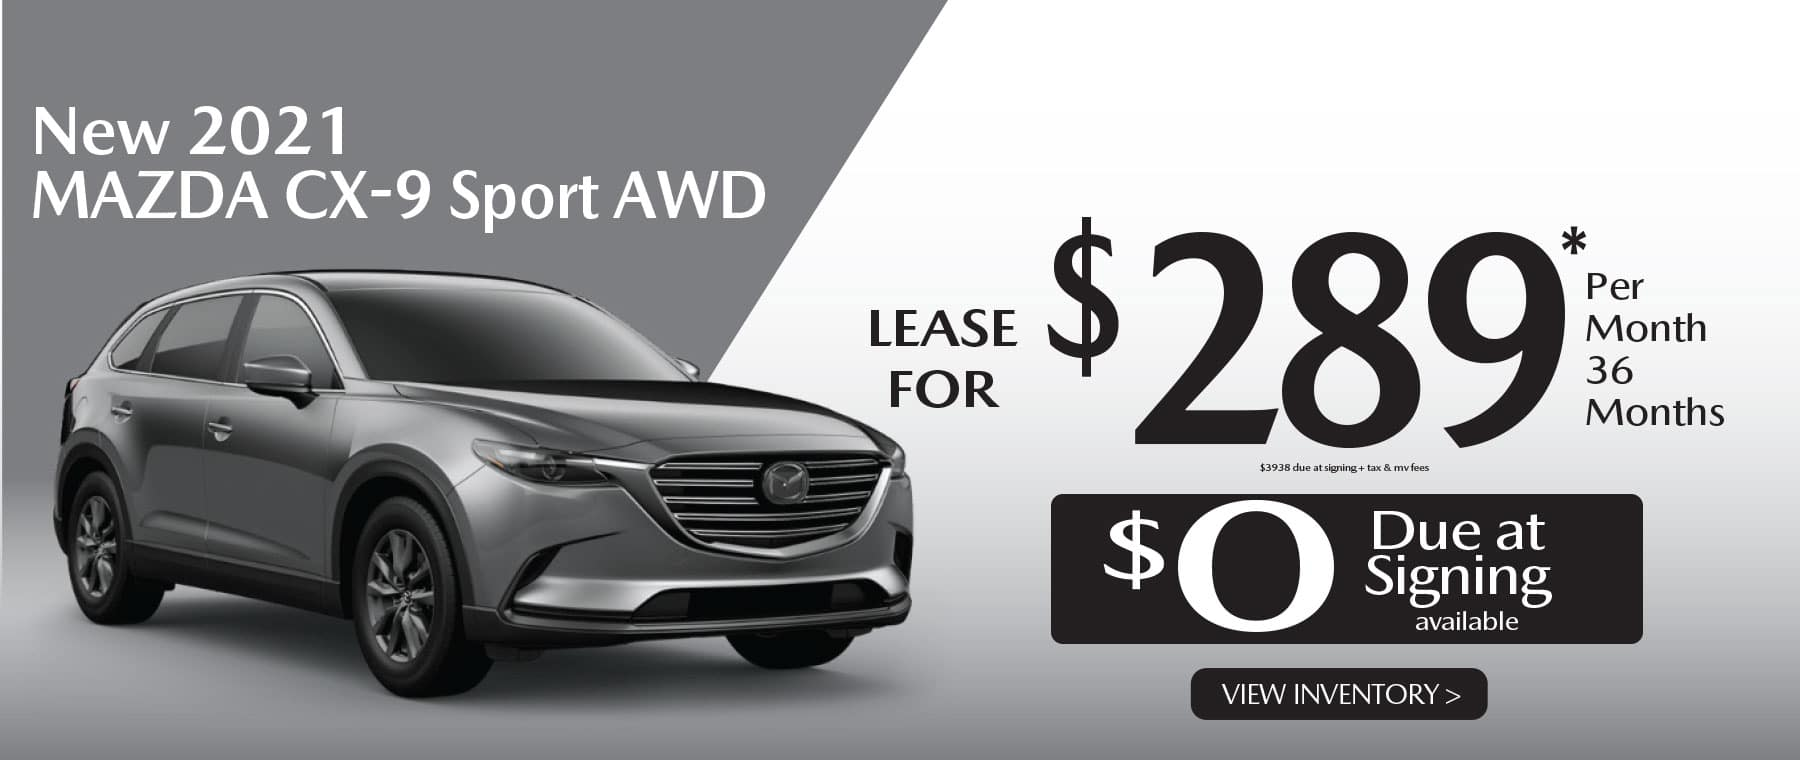 01u CX-9 hi New Lease Special Offer Garden City Mazda NY